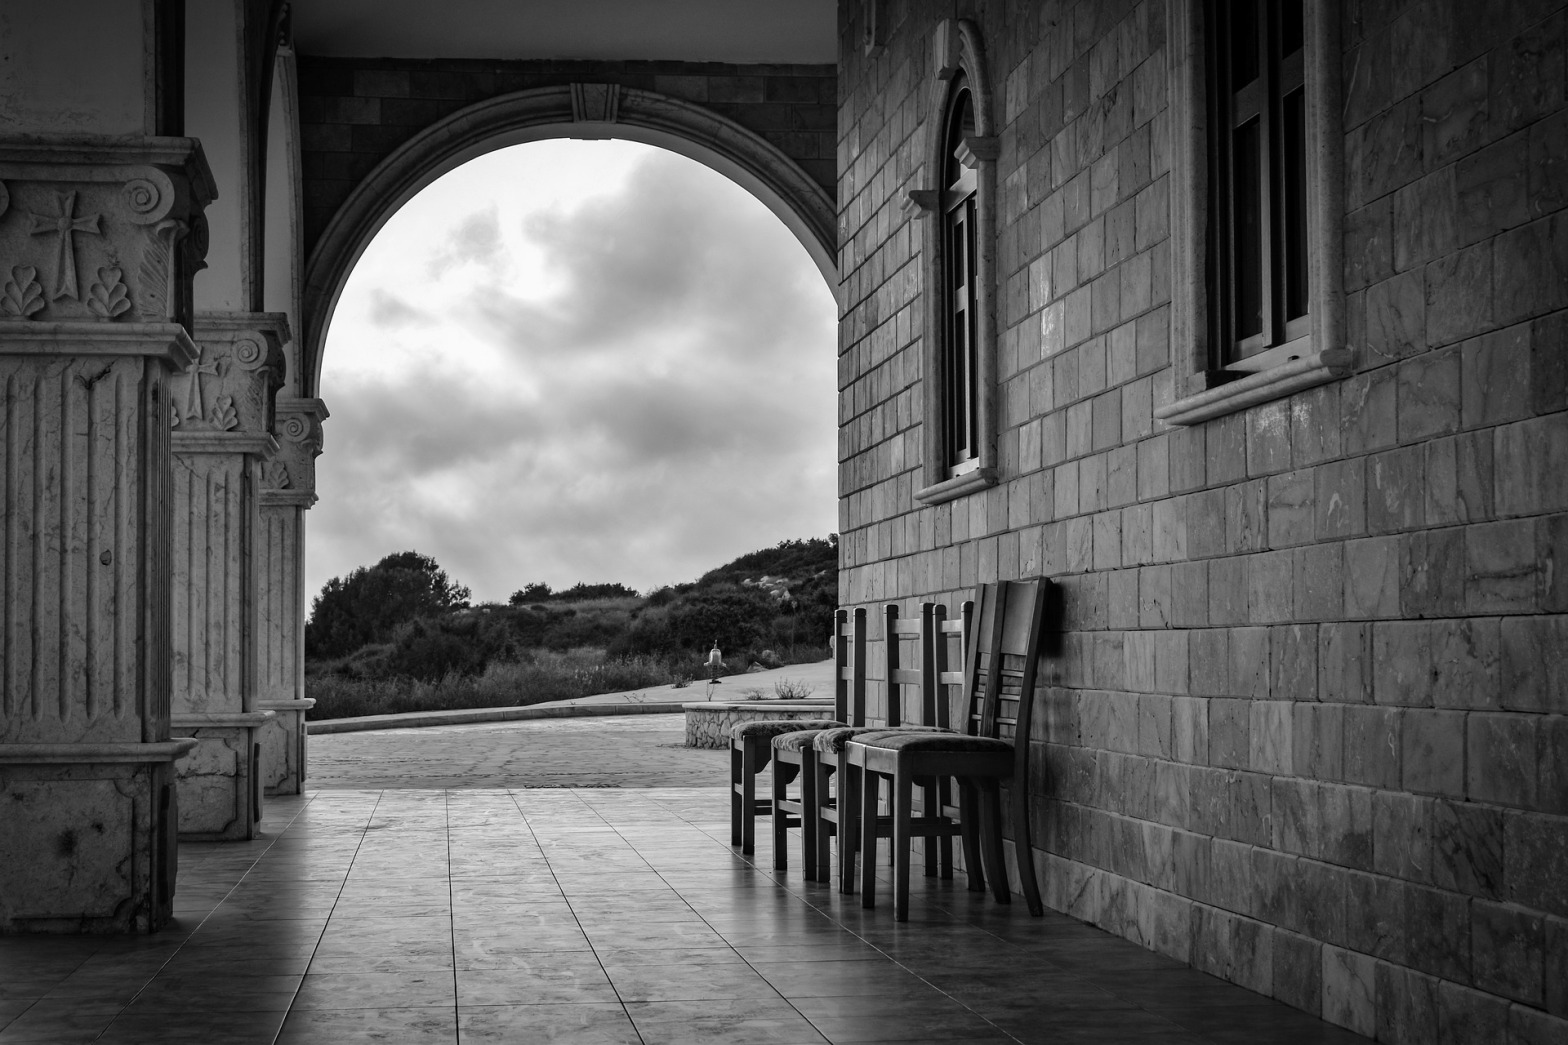 chairs outside church, black and white photo